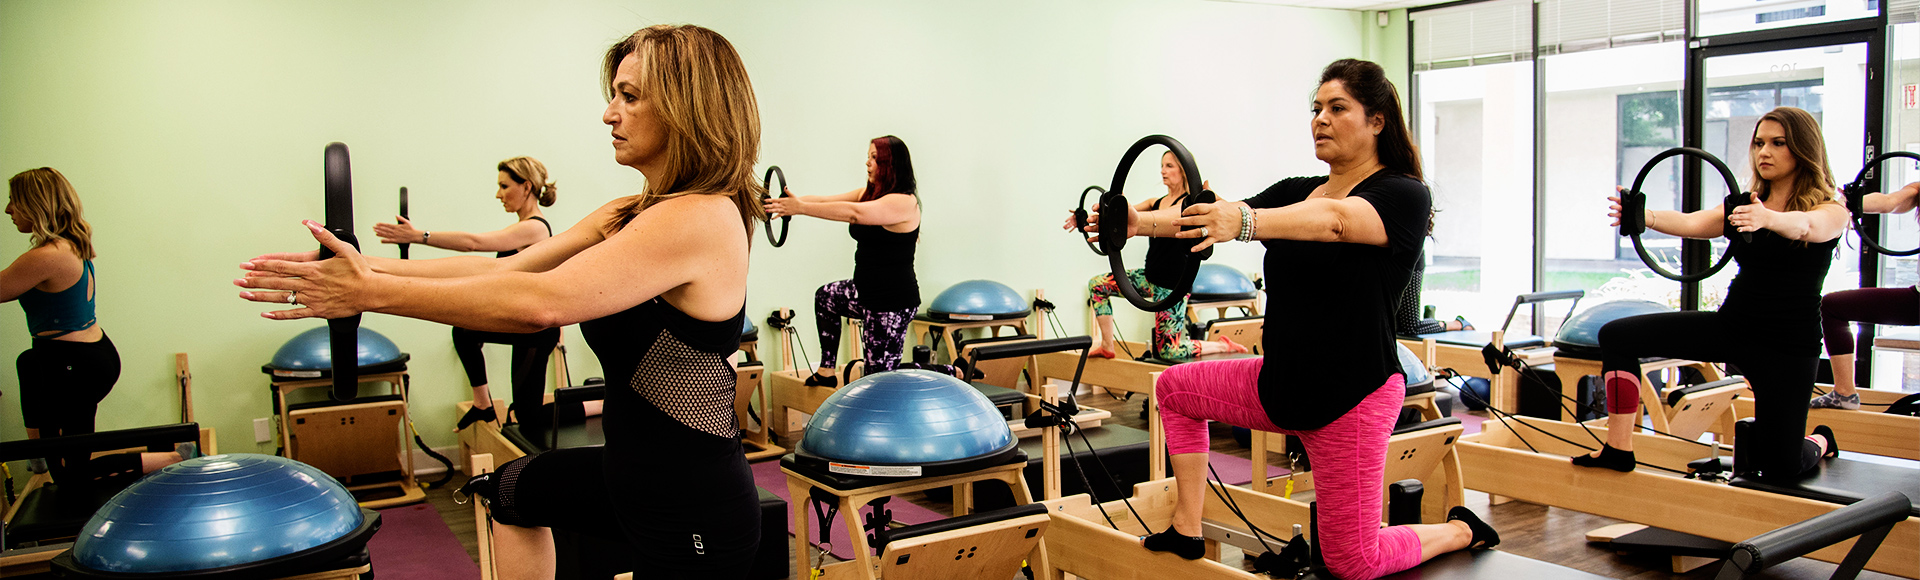 Pilates Studio Woodland Hills & Los Angeles